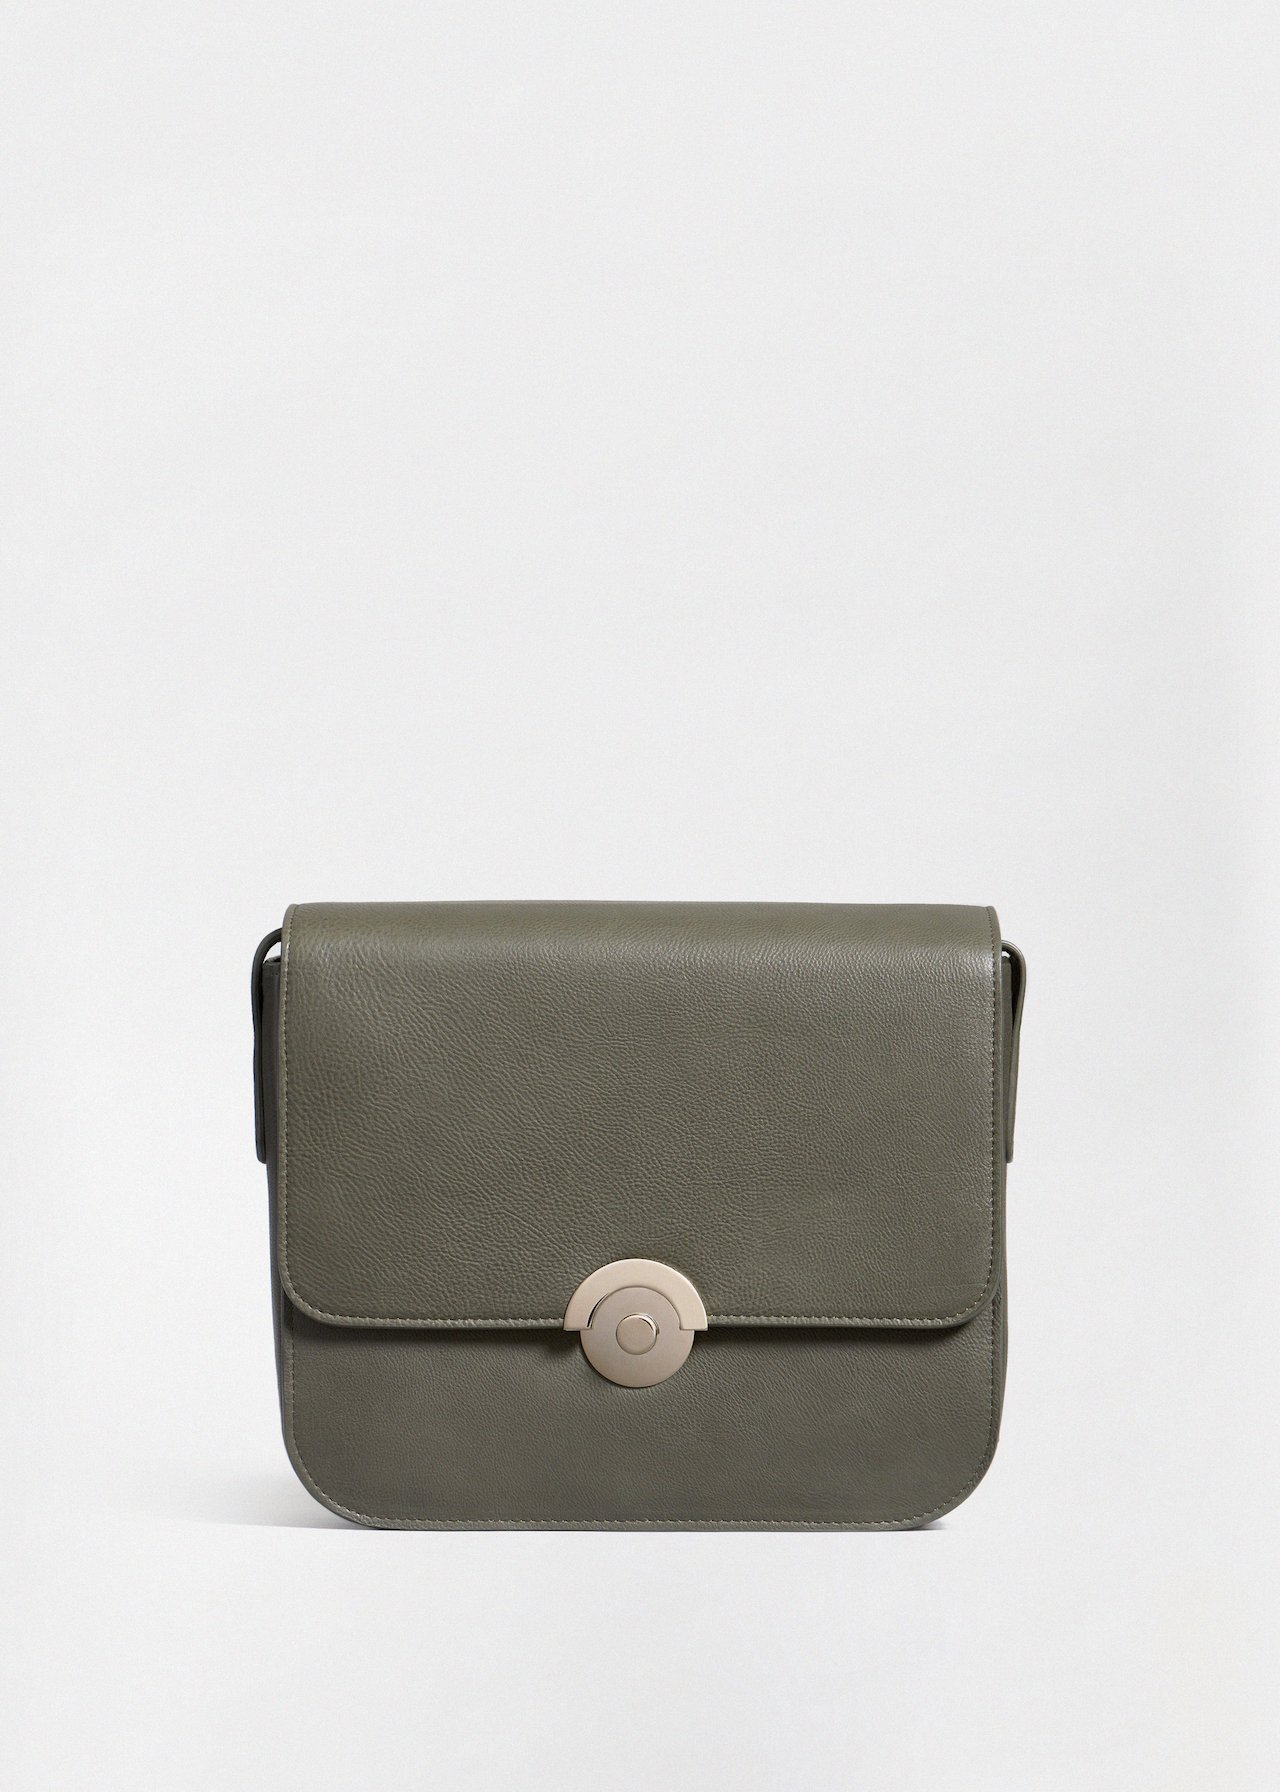 Box Bag in Pebbled Leather - Black in Olive by Co Collections